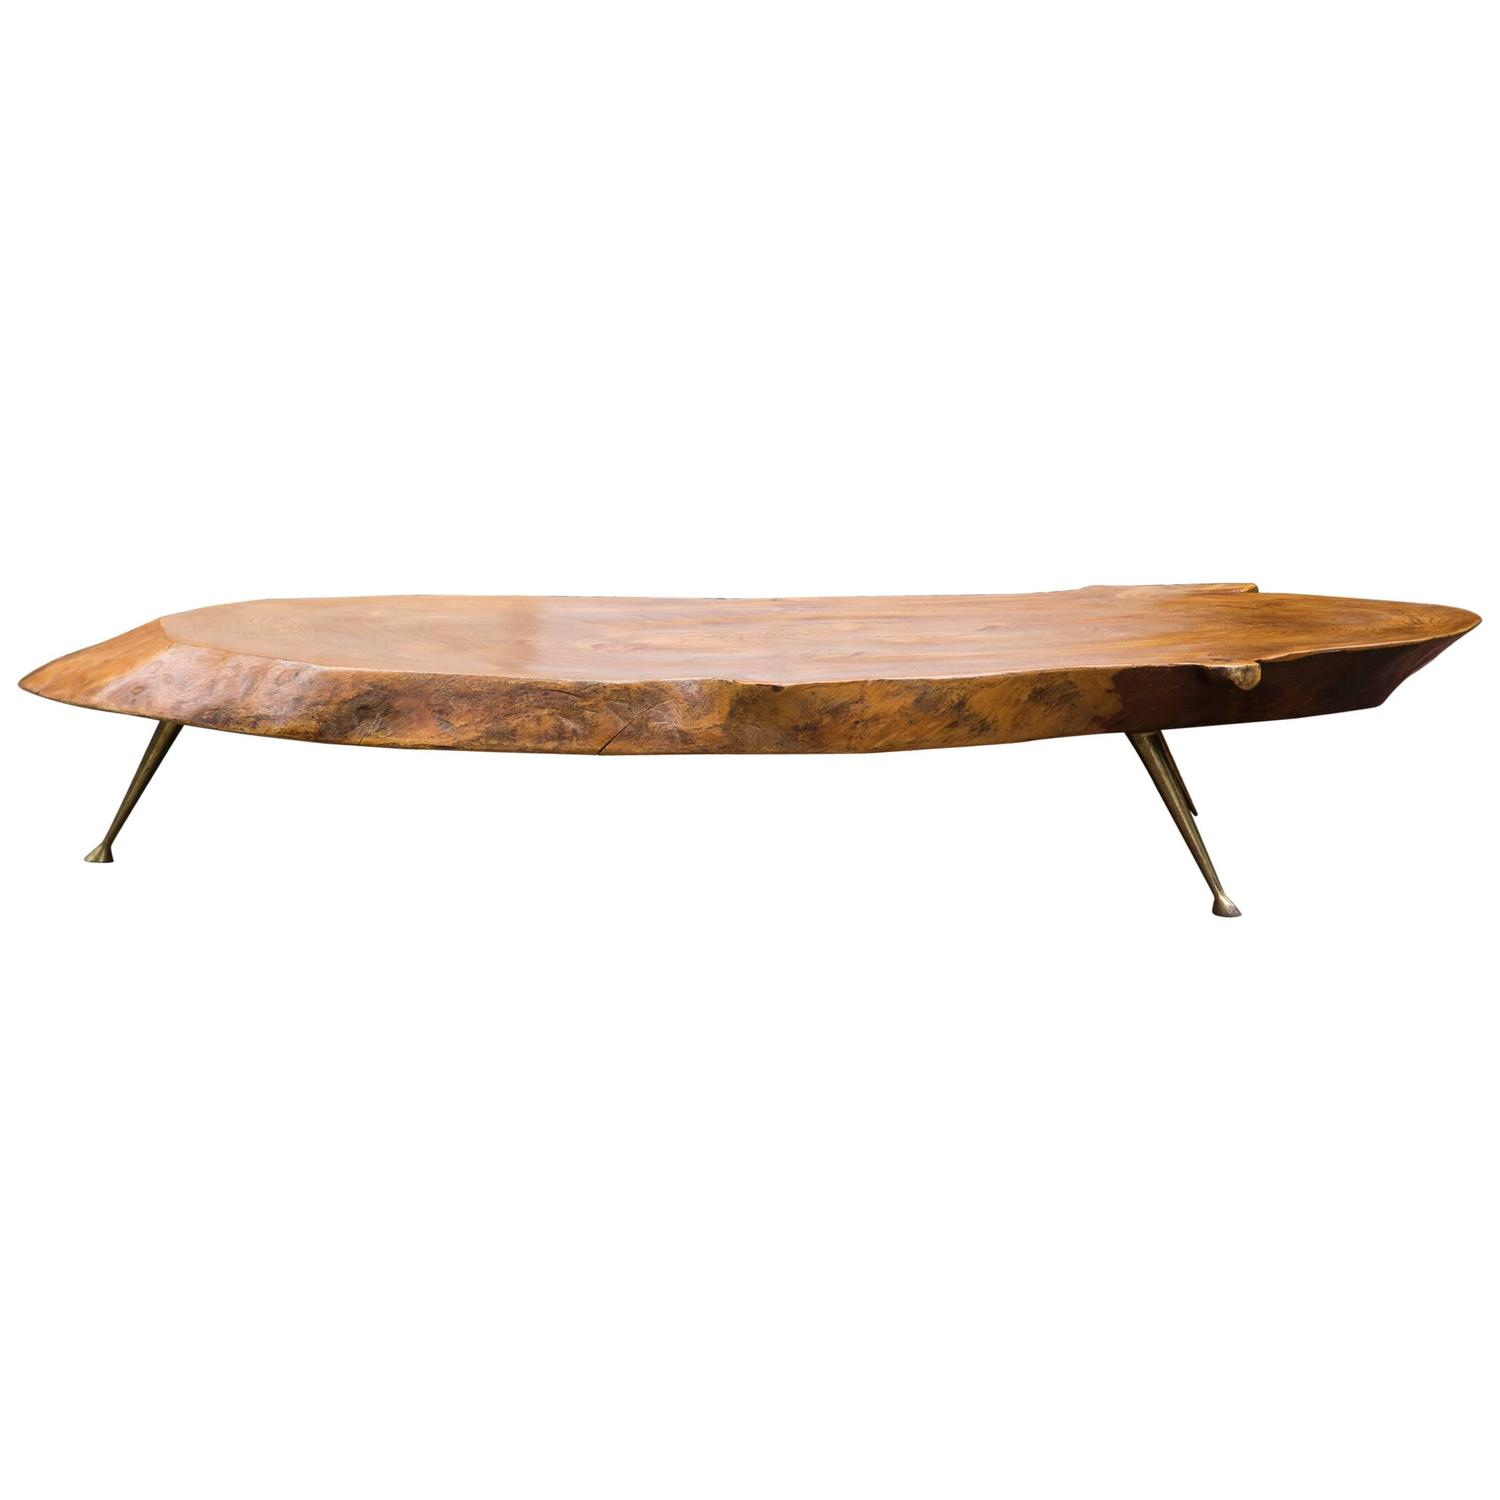 Tree trunk coffee table nakashima style at 1stdibs - Trunk style coffee tables ...